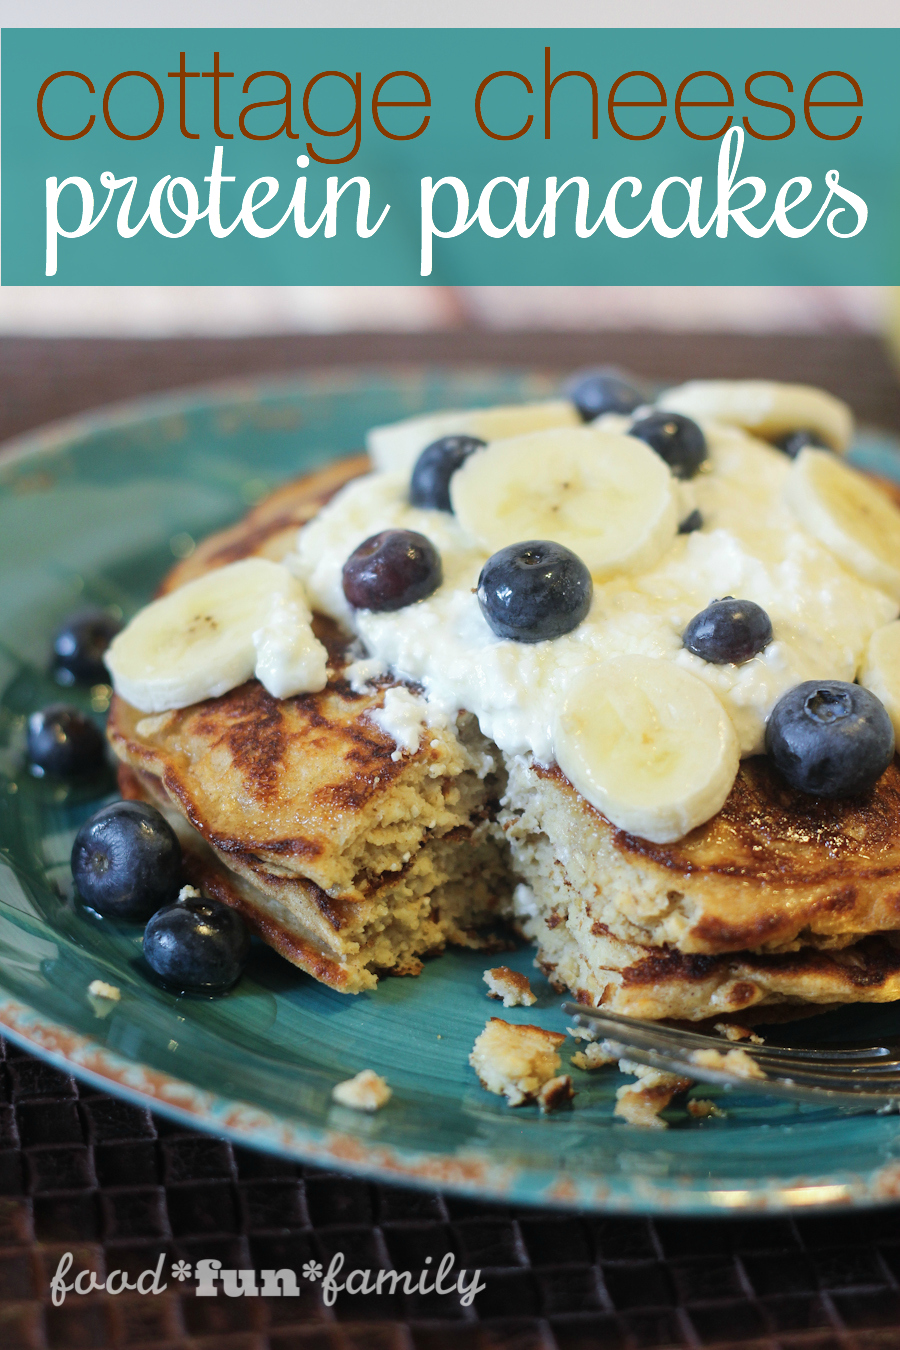 Cottage Cheese Protein Pancakes - a delicious, filling breakfast recipe that can be a great alternative for a high protein or gluten-free diet